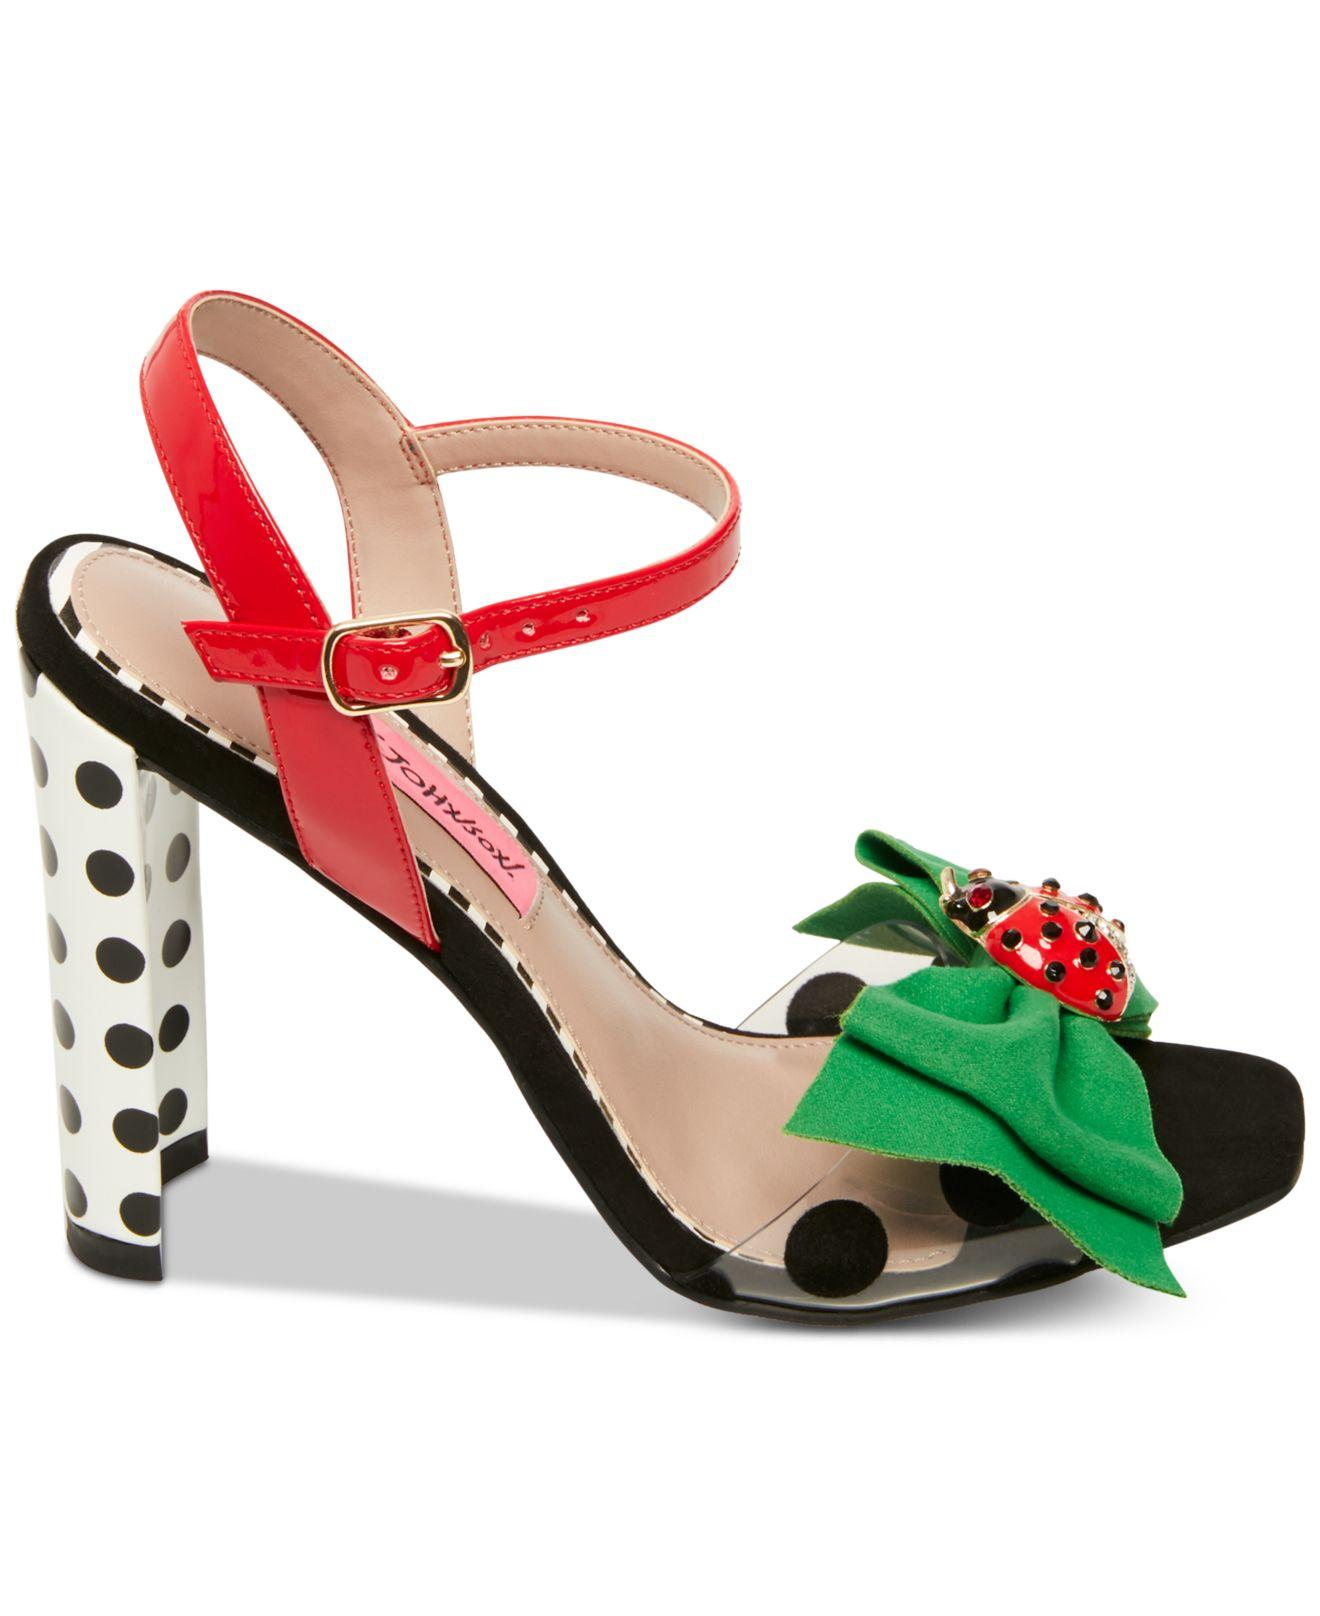 05a6ecc137b Lyst betsey johnson bini dress sandals in green jpg 1320x1616 Bini rinah  gianni platform wedge sandals